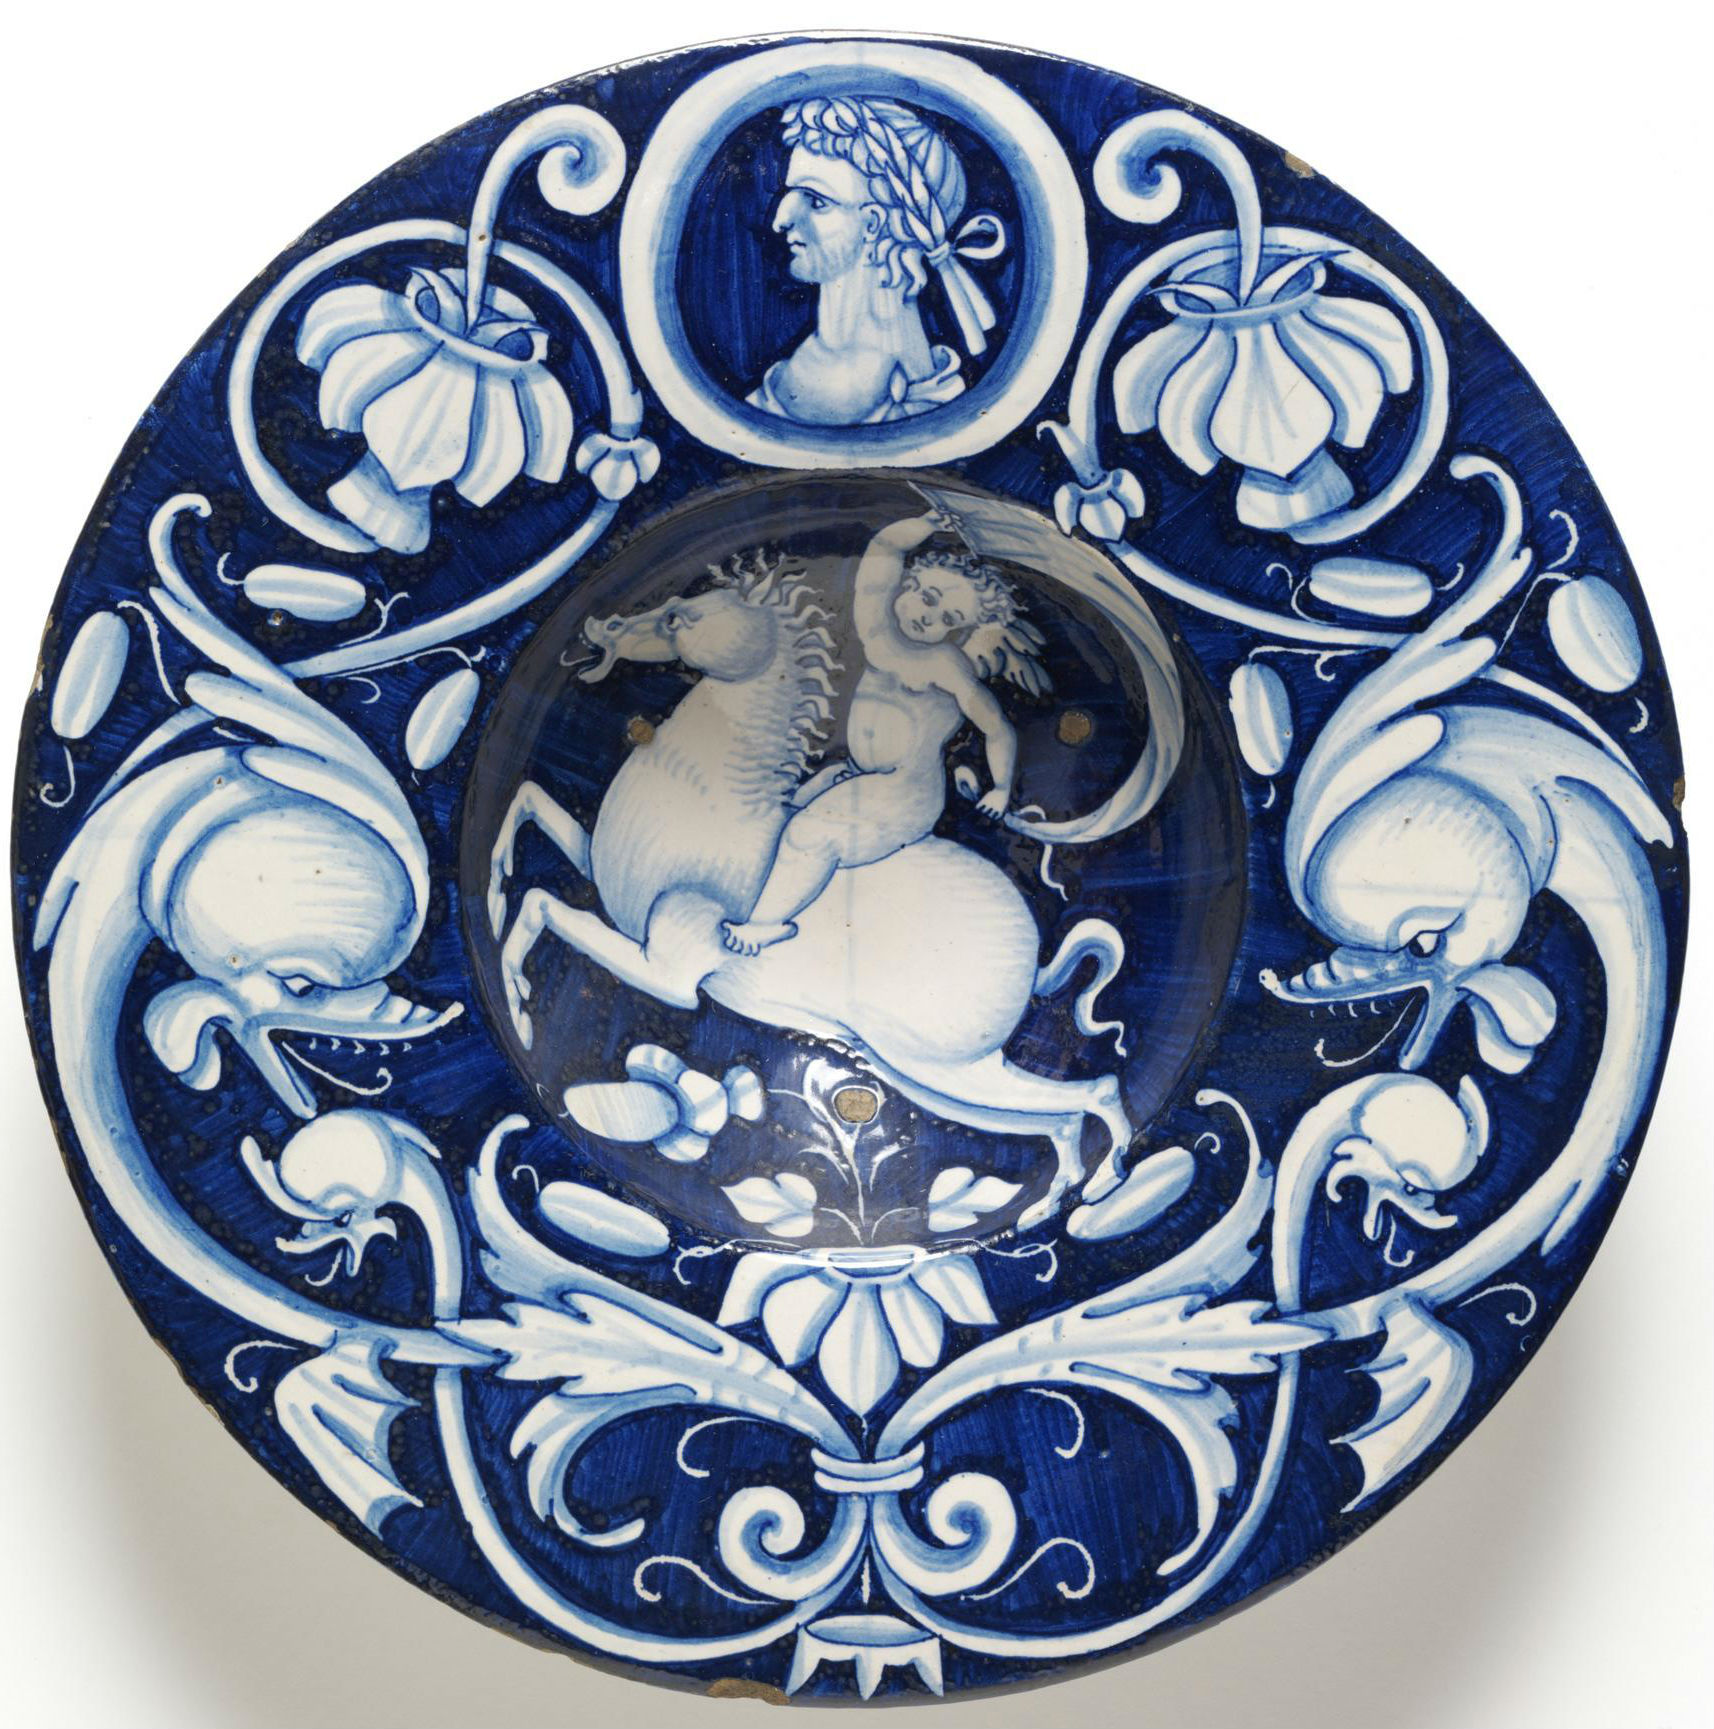 Bowl with a naked boy holding a sail on a galloping horse, 1520-30, possibly Nicola Francioli, Deruta